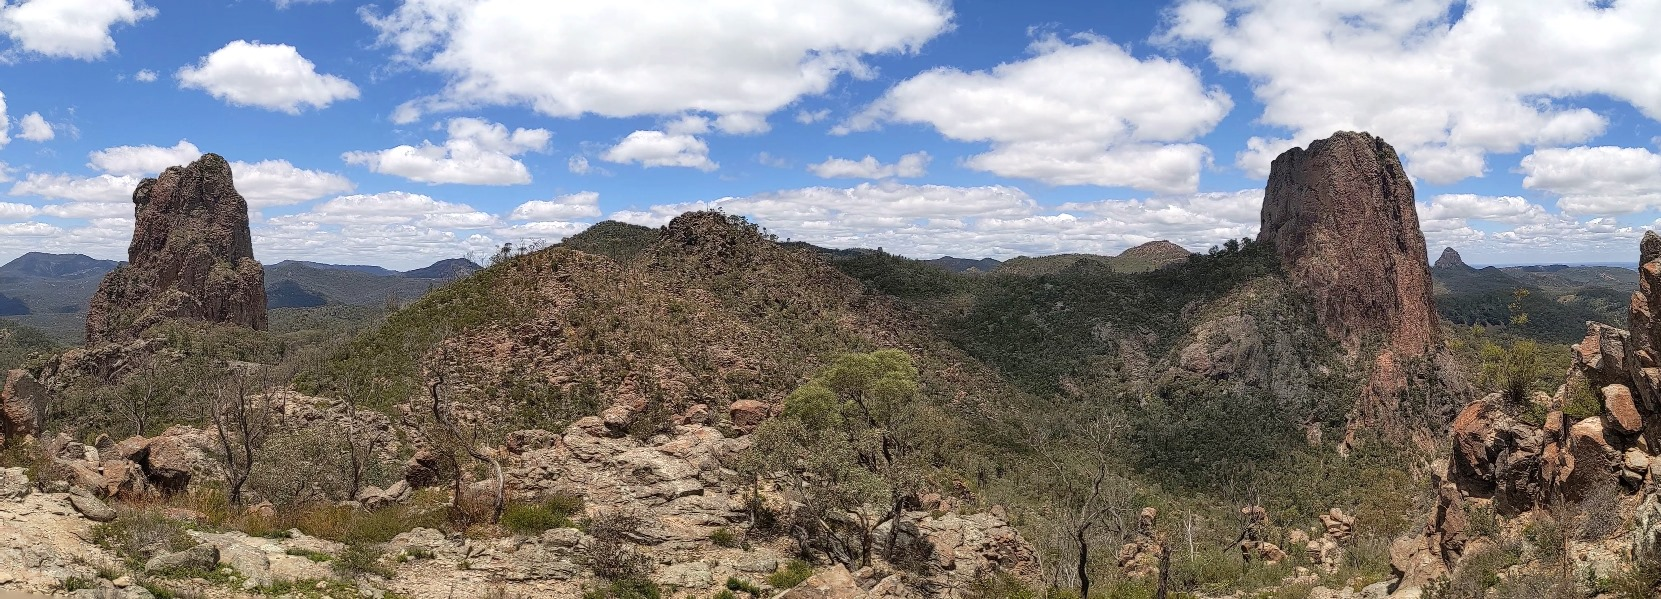 warrumbungles mountain range